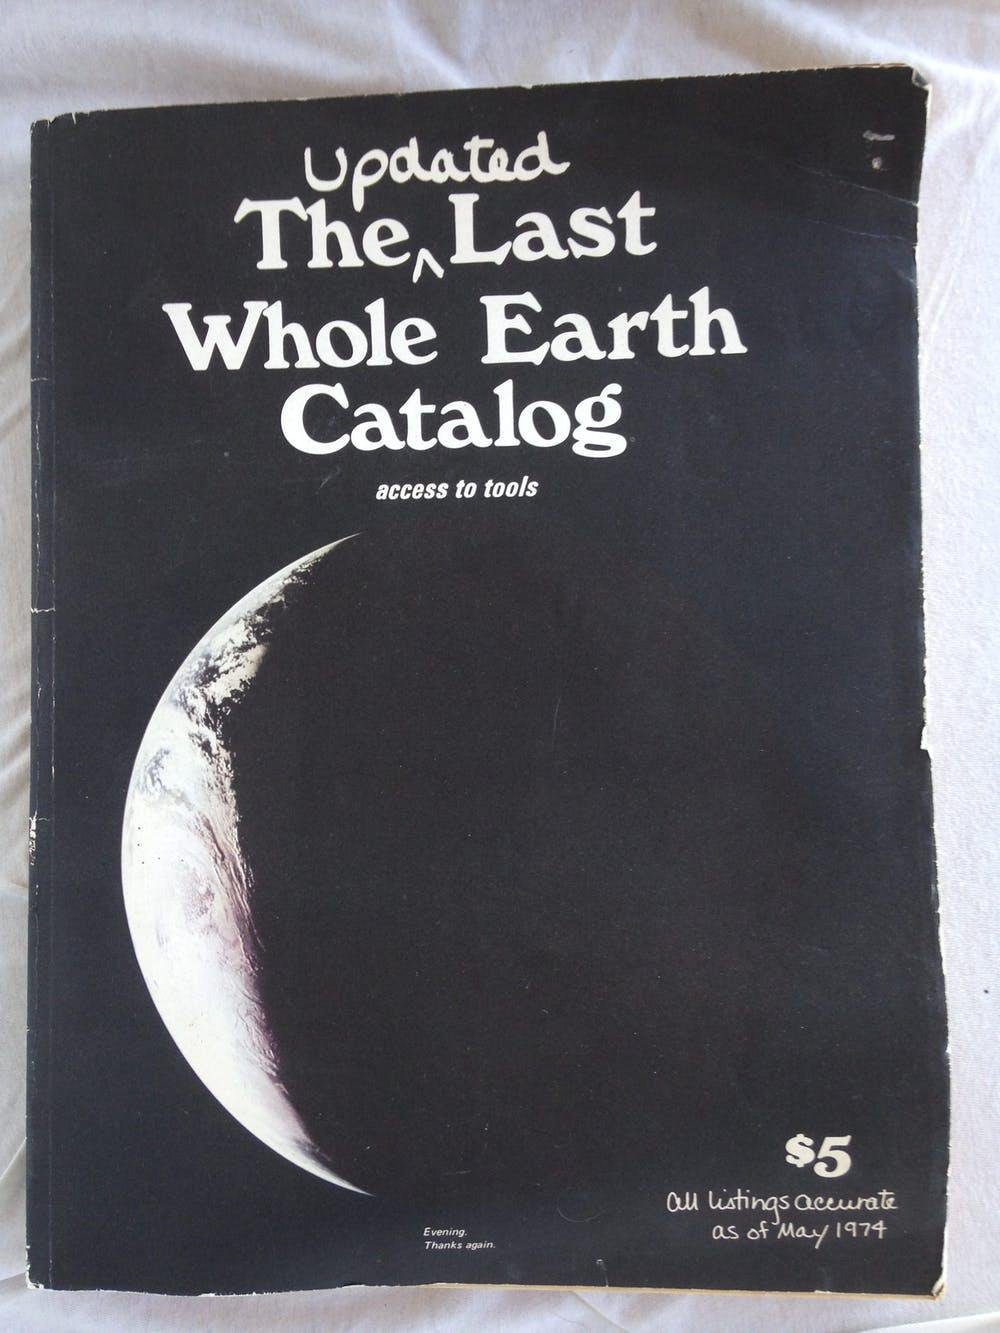 50 Years Ago, the Whole Earth Catalog Launched and Reinvented the Environmental Movement